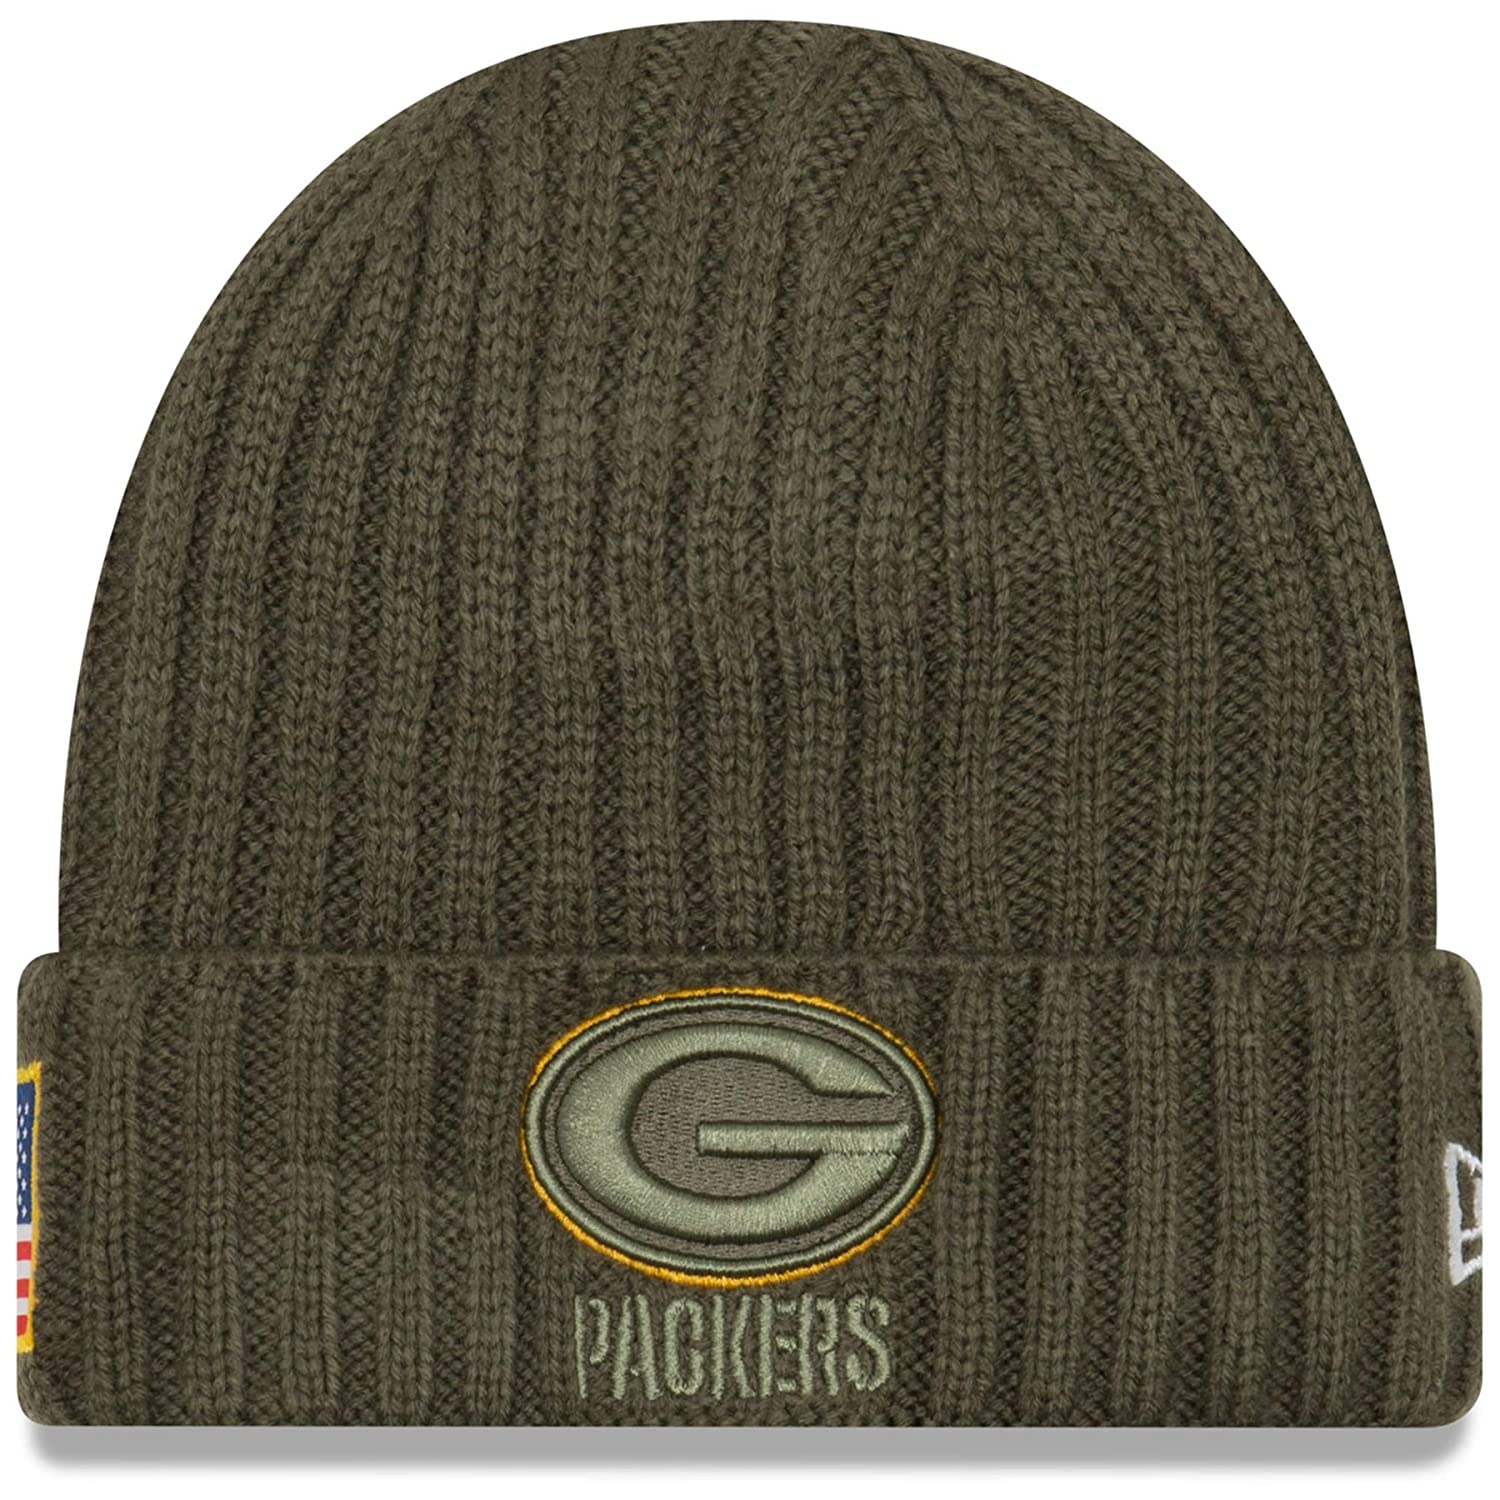 216415a274a New Era Men s Men s Packers 2017 Salute to Service Cuffed Knit Hat Olive  Size One Size at Amazon Men s Clothing store